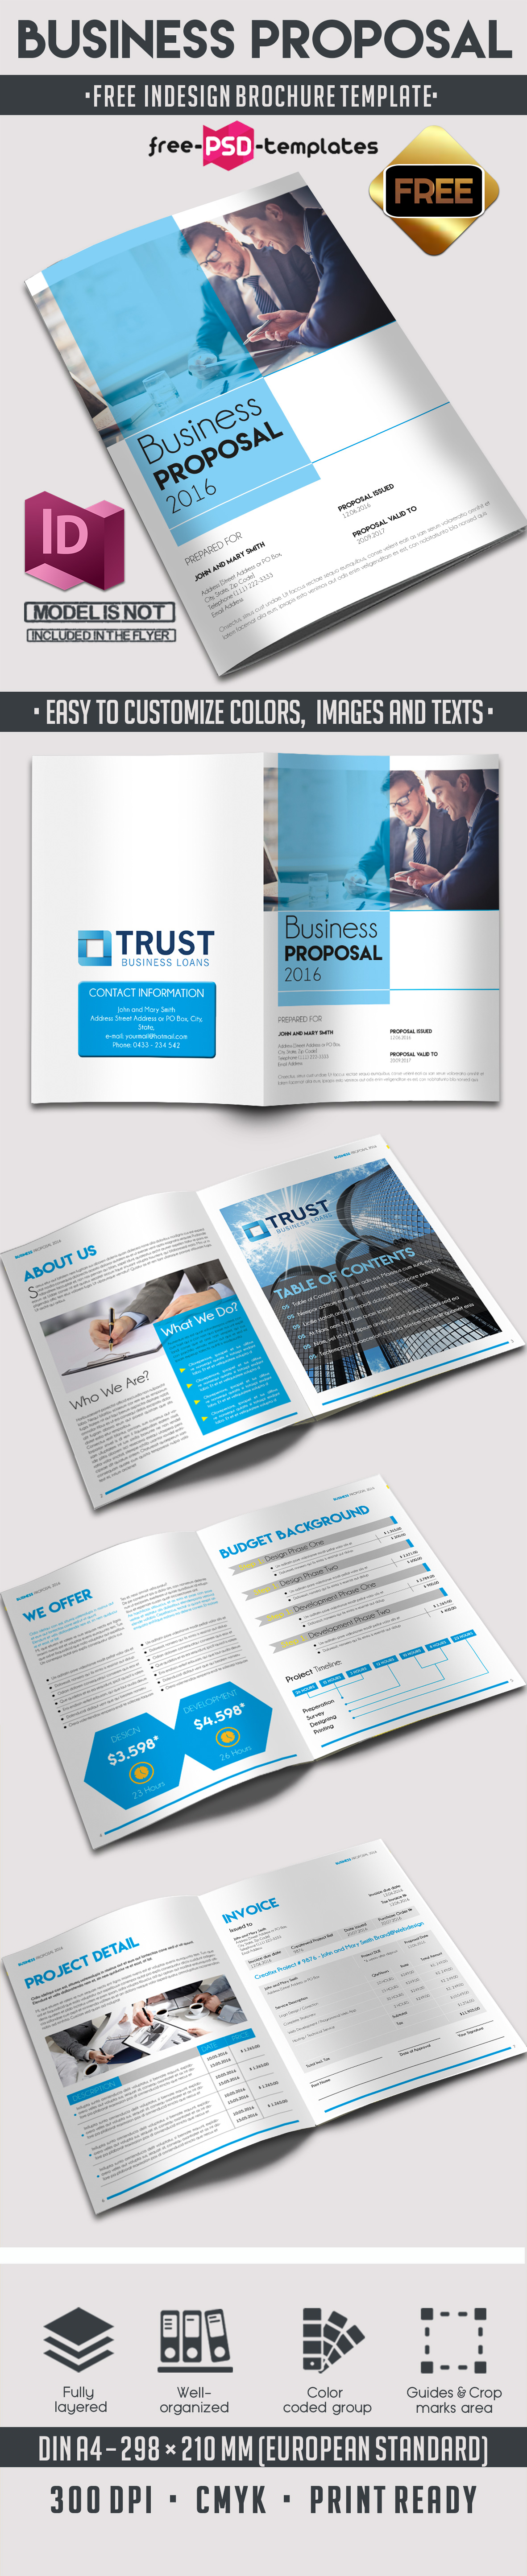 brochure design templates online free - free business proposal brochure 8 pages a4 free psd